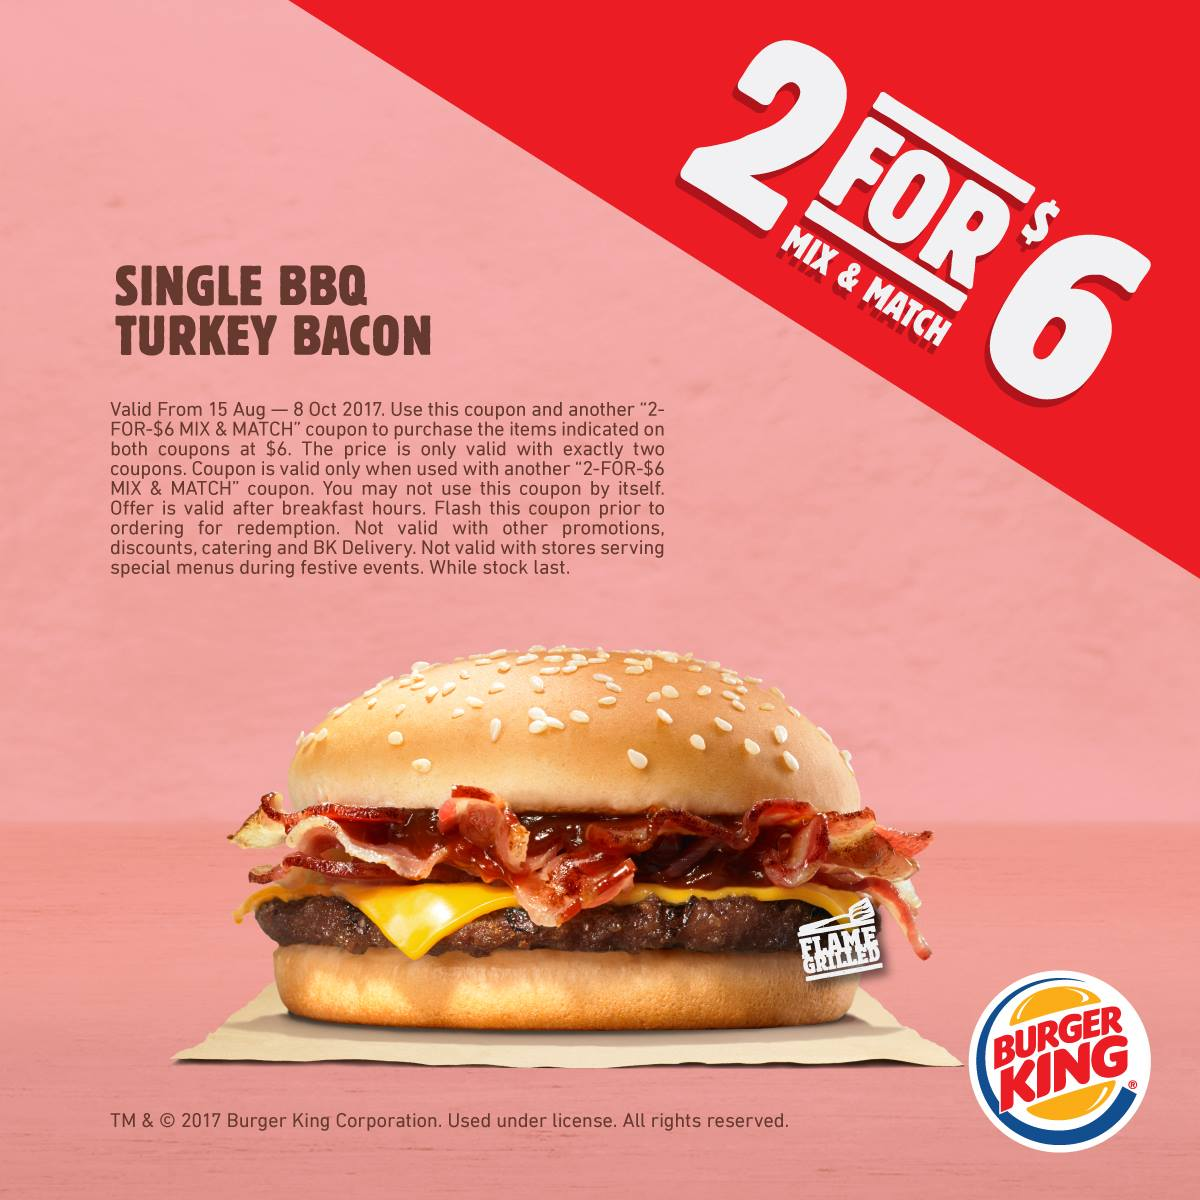 marketing mix for burger king the 7 p s Learn how burger king is turning the tables on mcdonald's, and adding another fascinating chapter to a story of one of the most iconic business rivalries of all time.